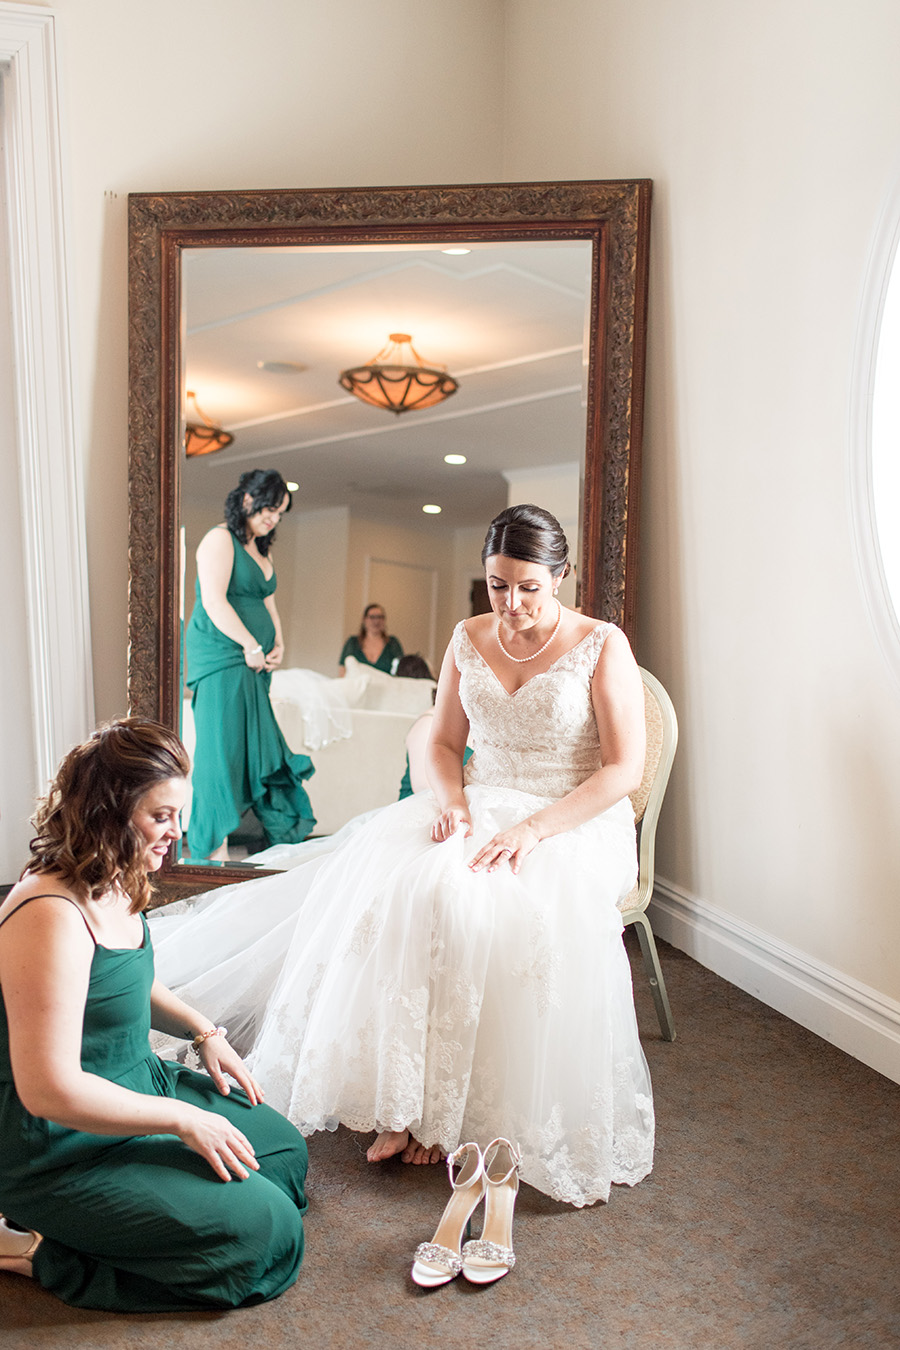 bride getting her shoes on